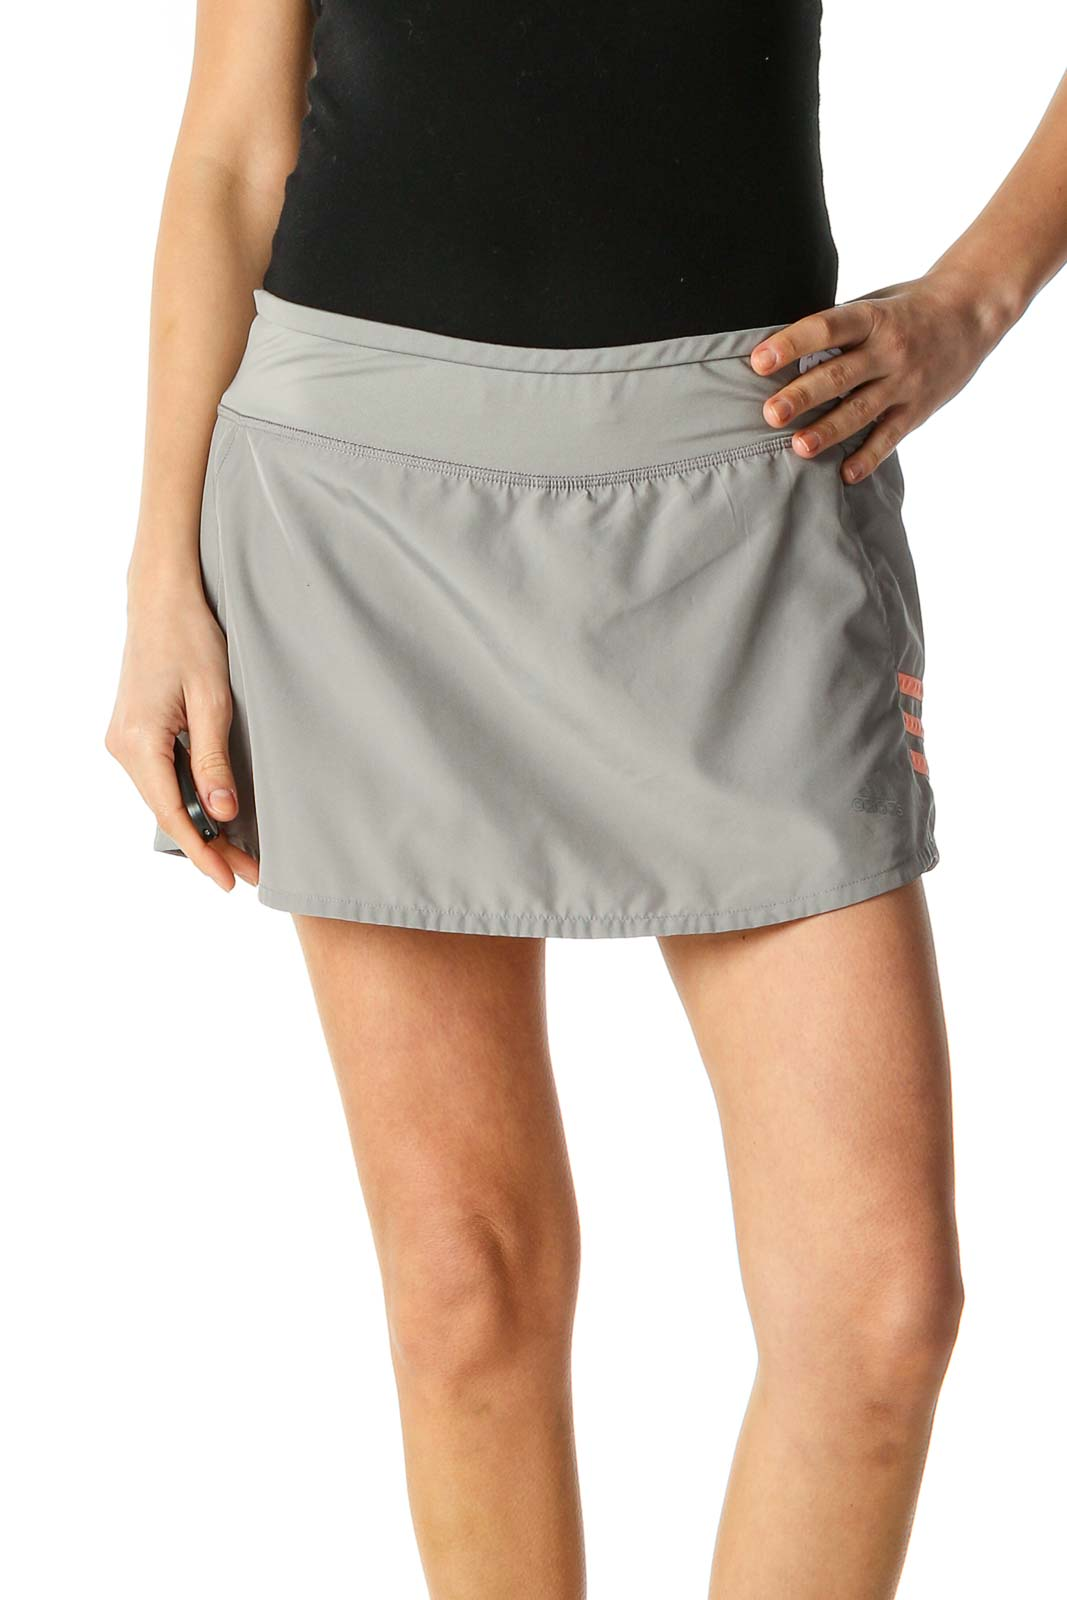 Gray Solid Activewear Mini Skirt Front